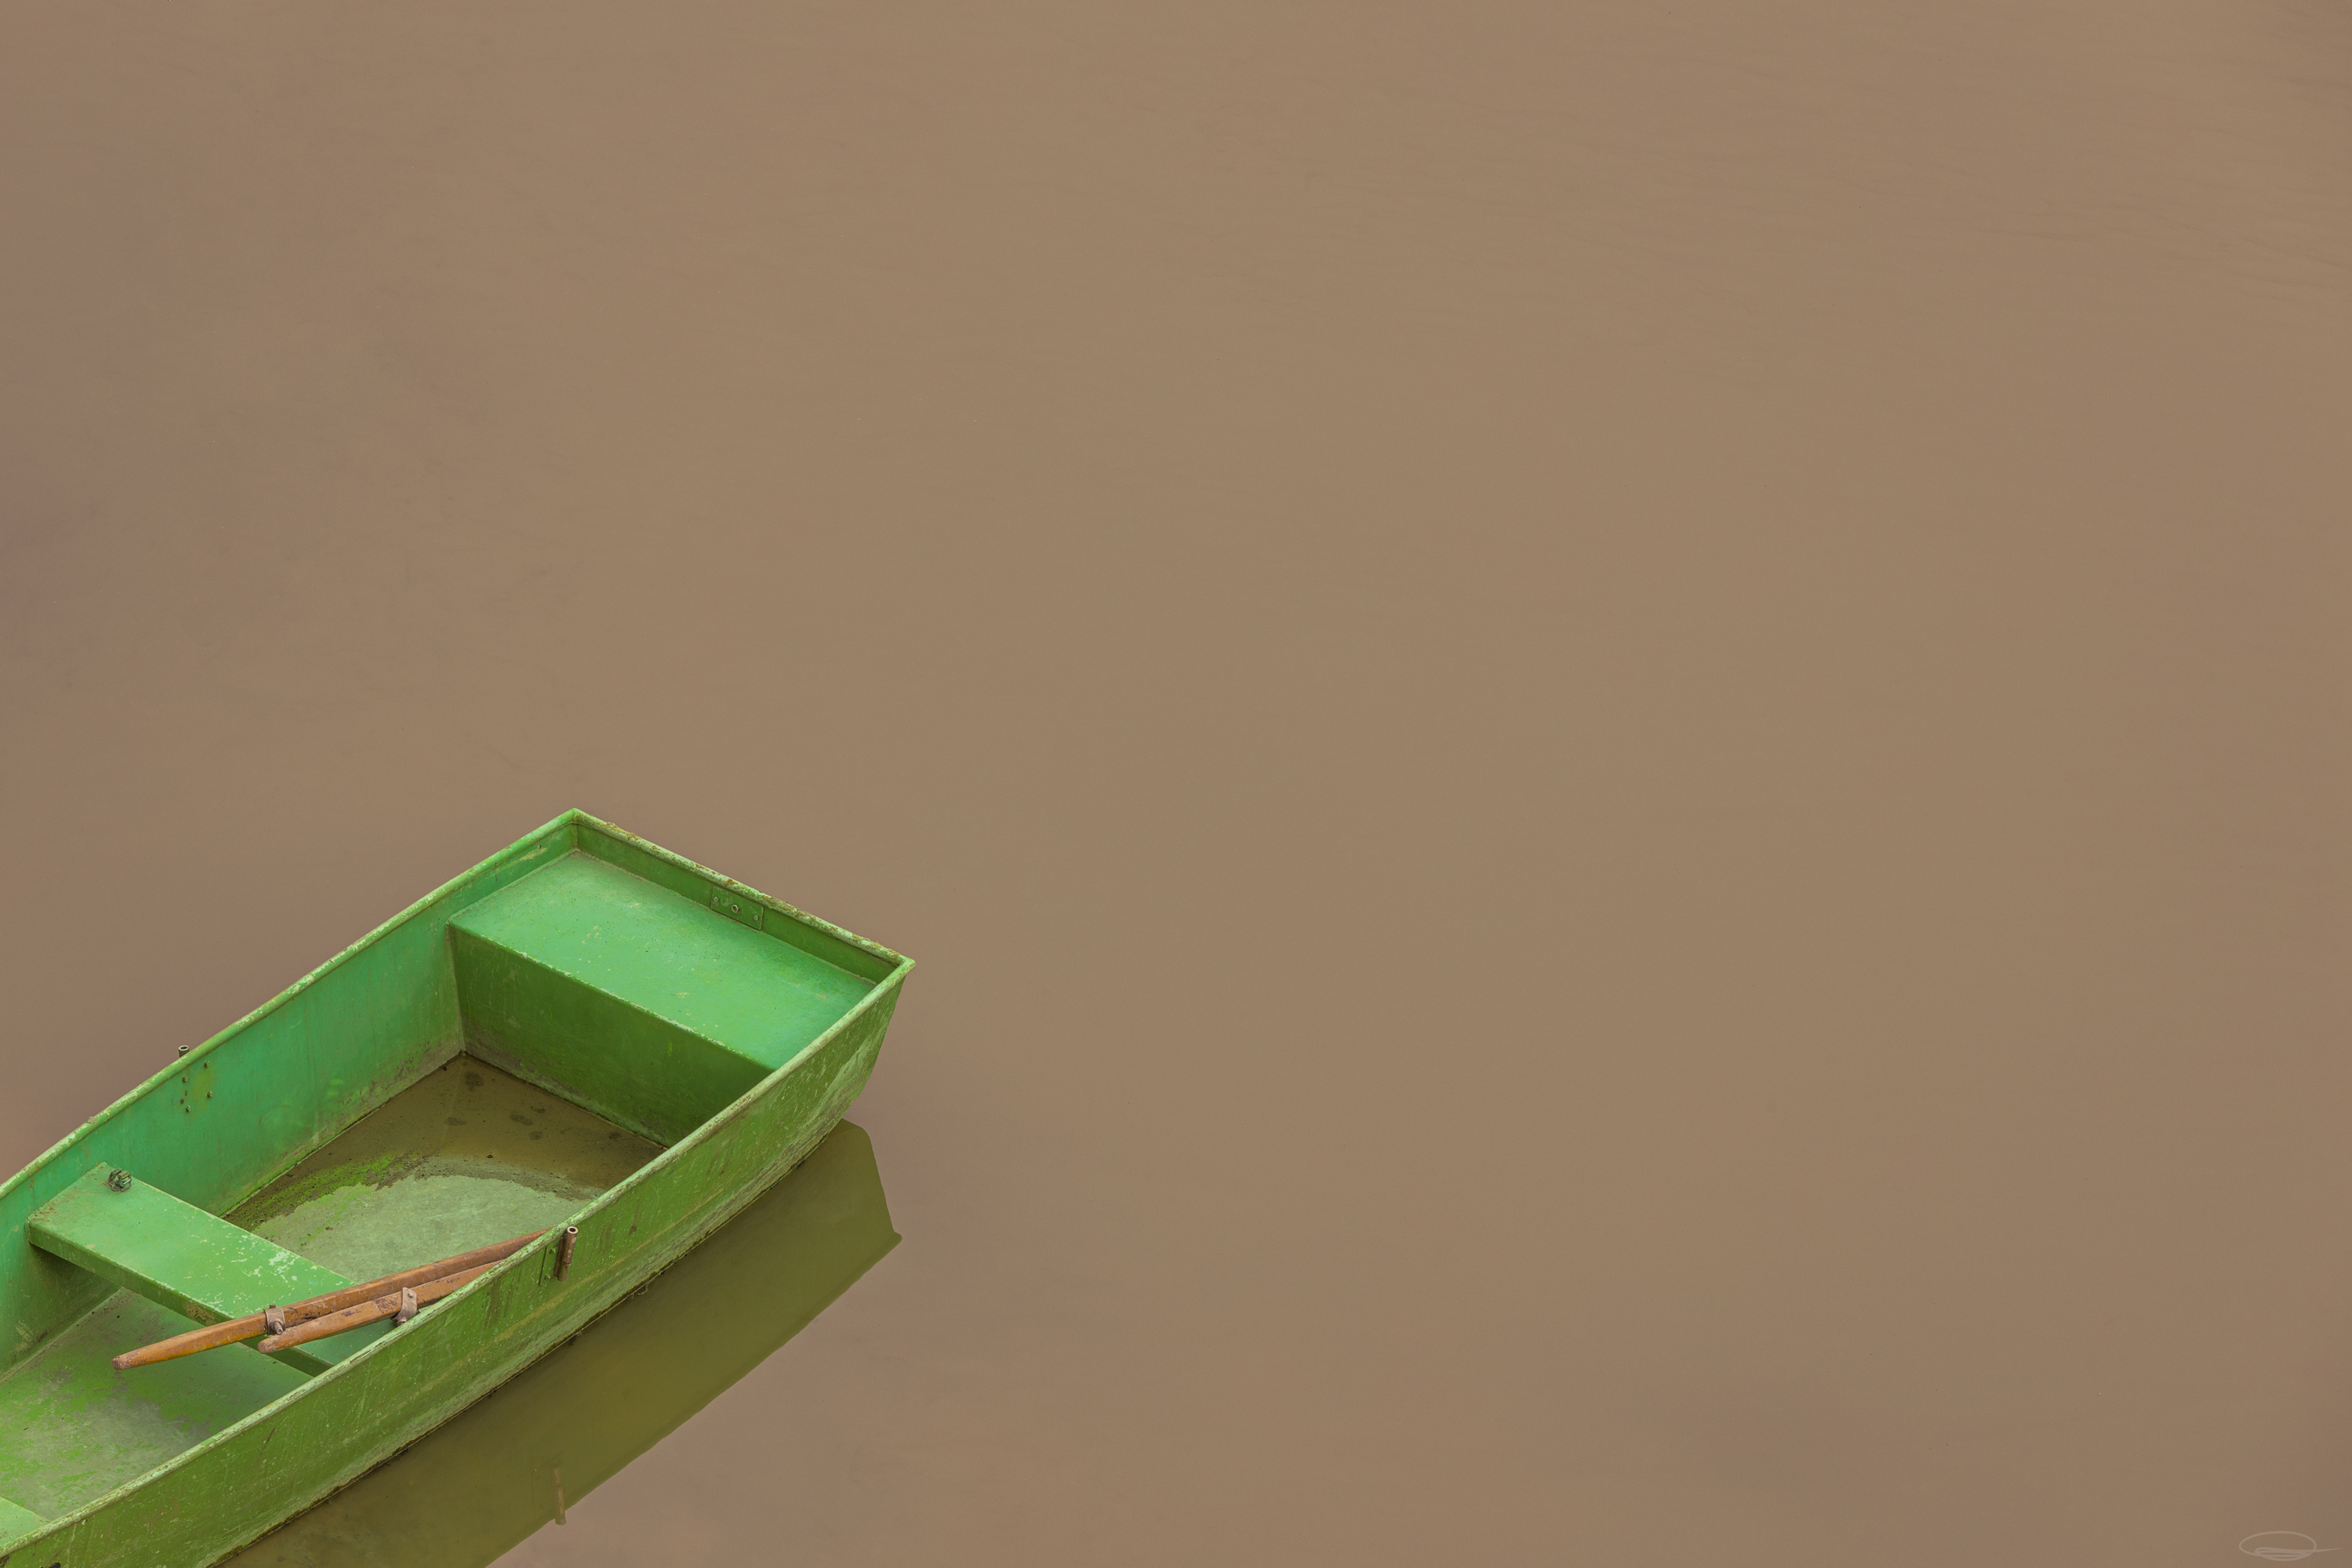 Lake Forstsee: green boat in the muddy puddle